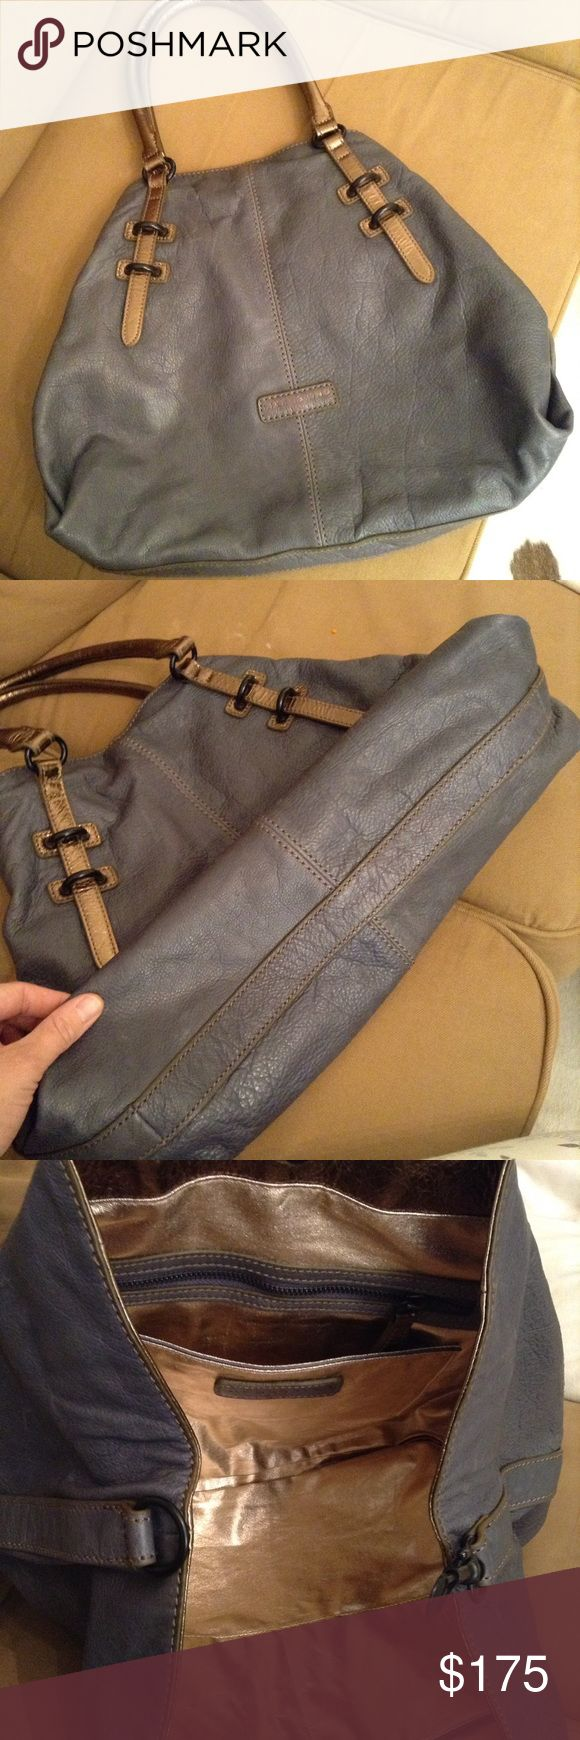 🎉HP🎉Liebeskind Shopper Tote Beautiful bag, worn only a few times. Dusty blue, metallic bronze handles. Lovely shape. Liebeskind Bags Totes